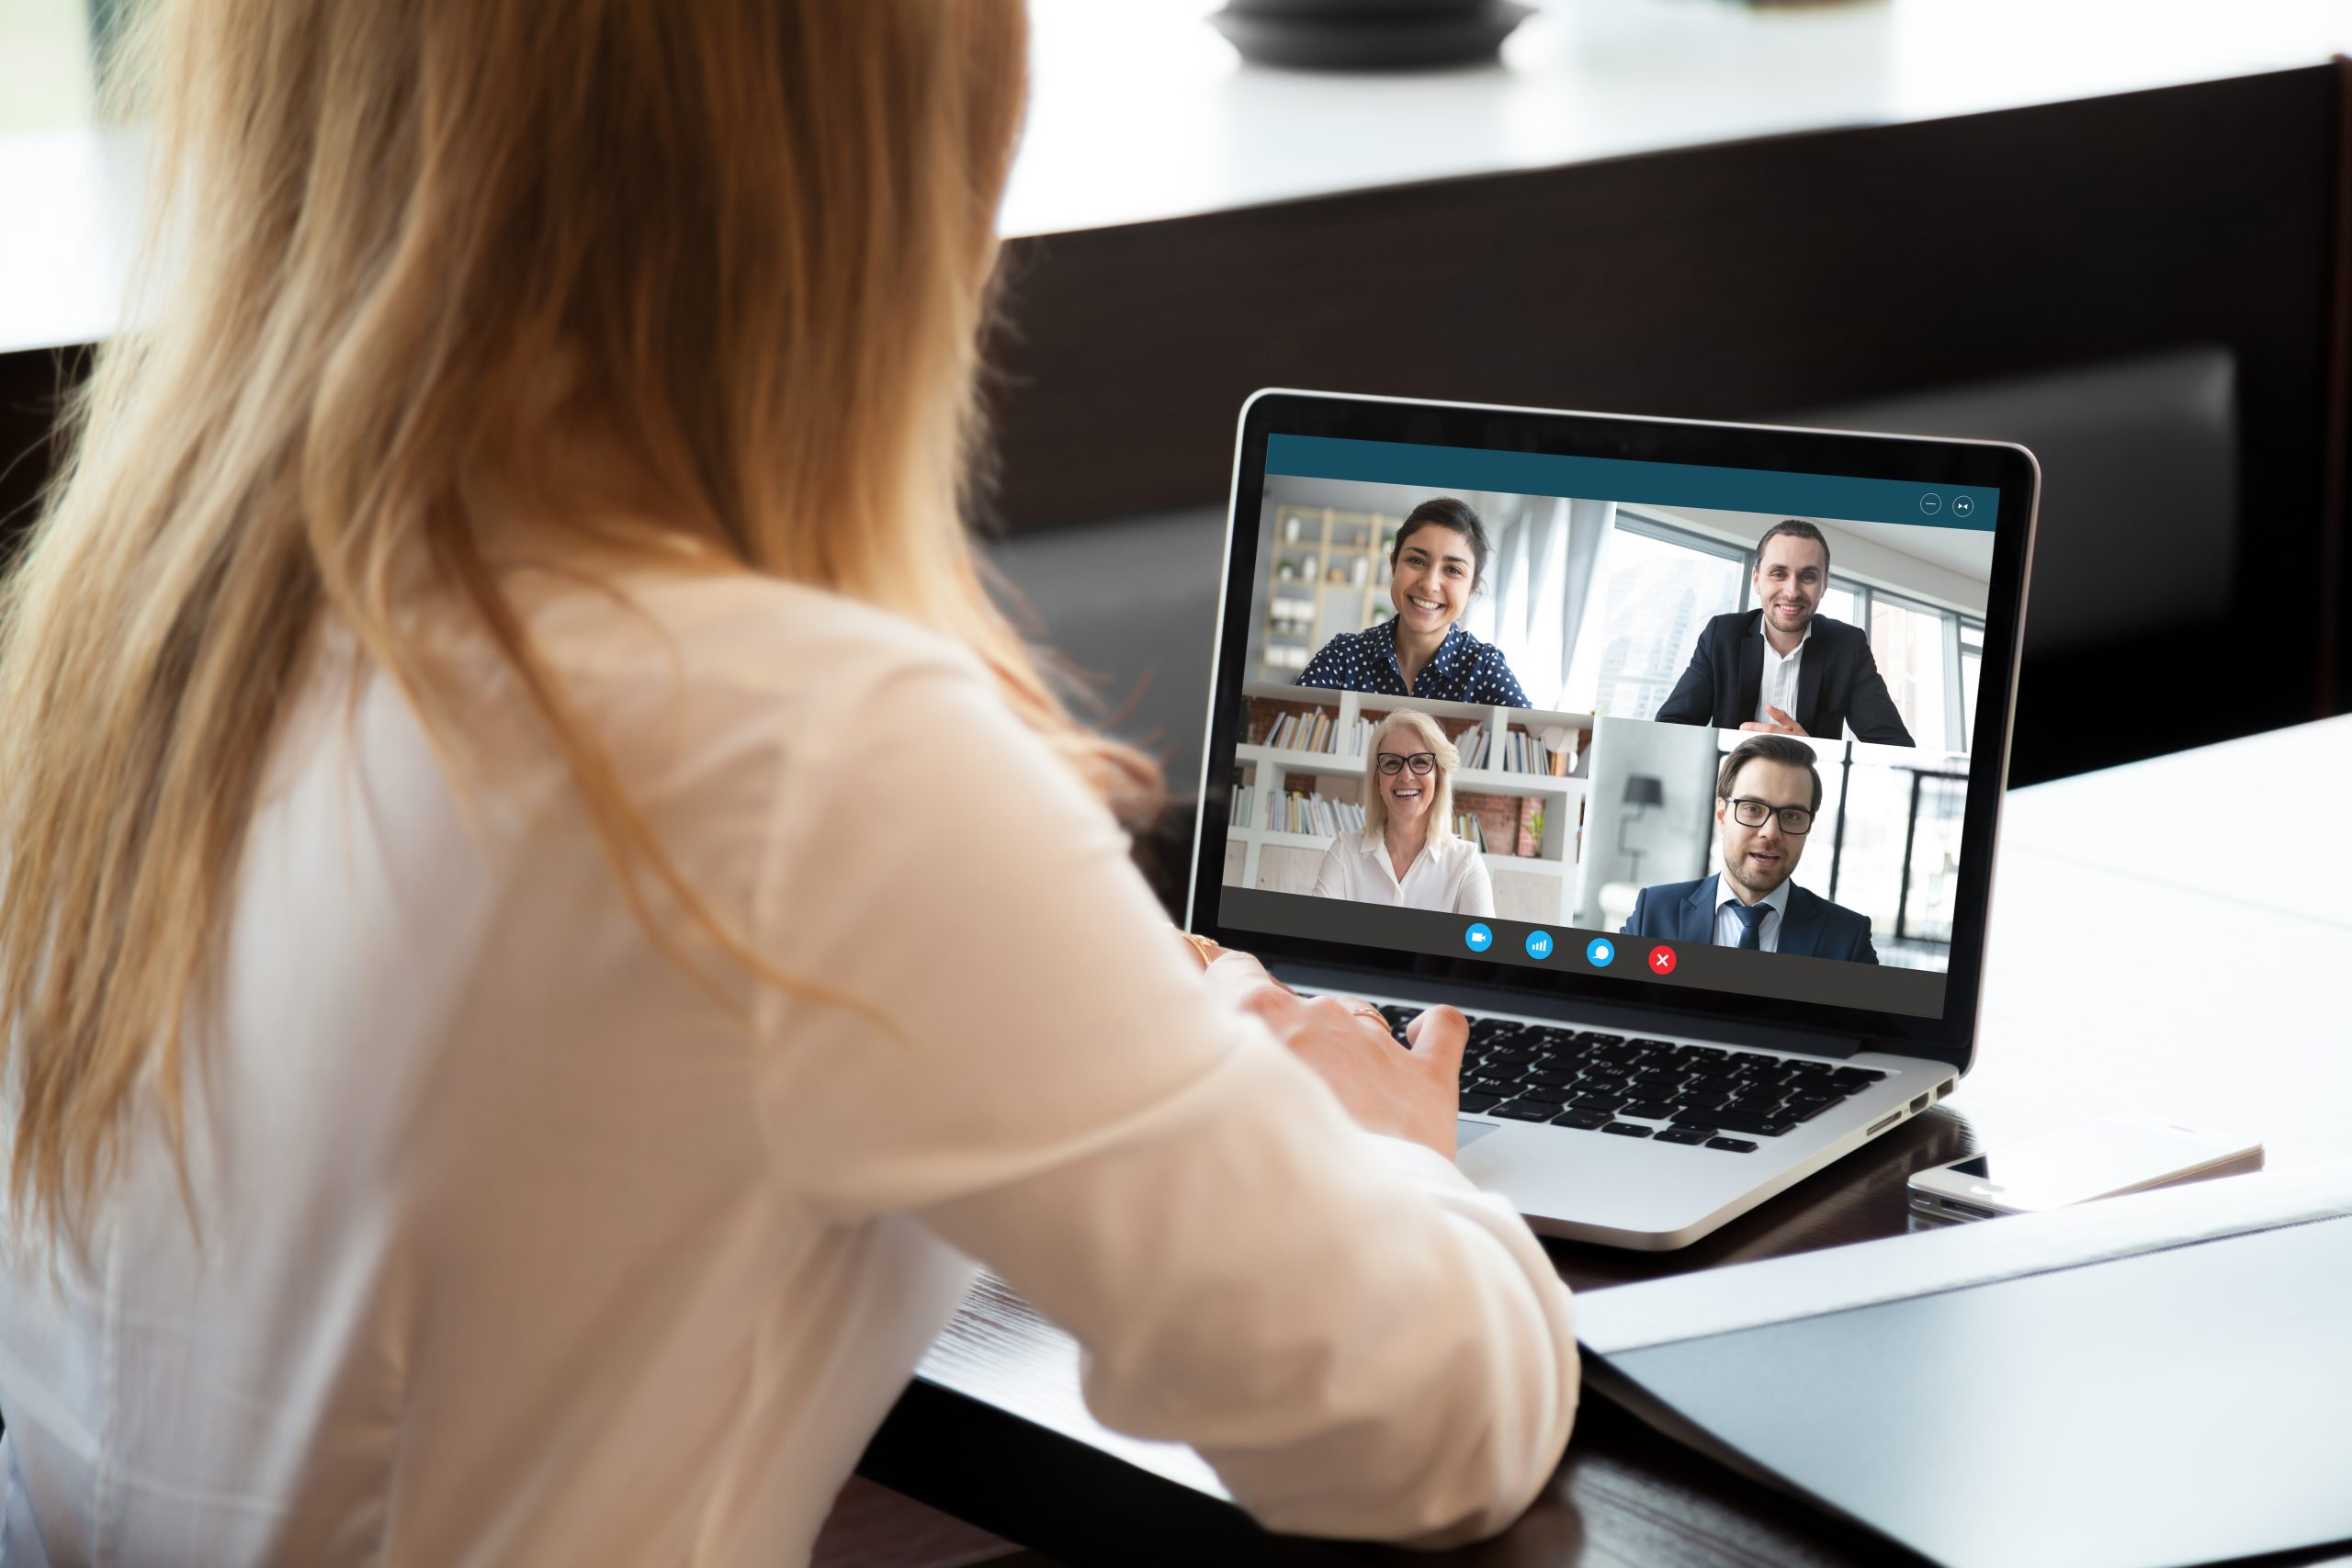 Professionals connect via video conferencing